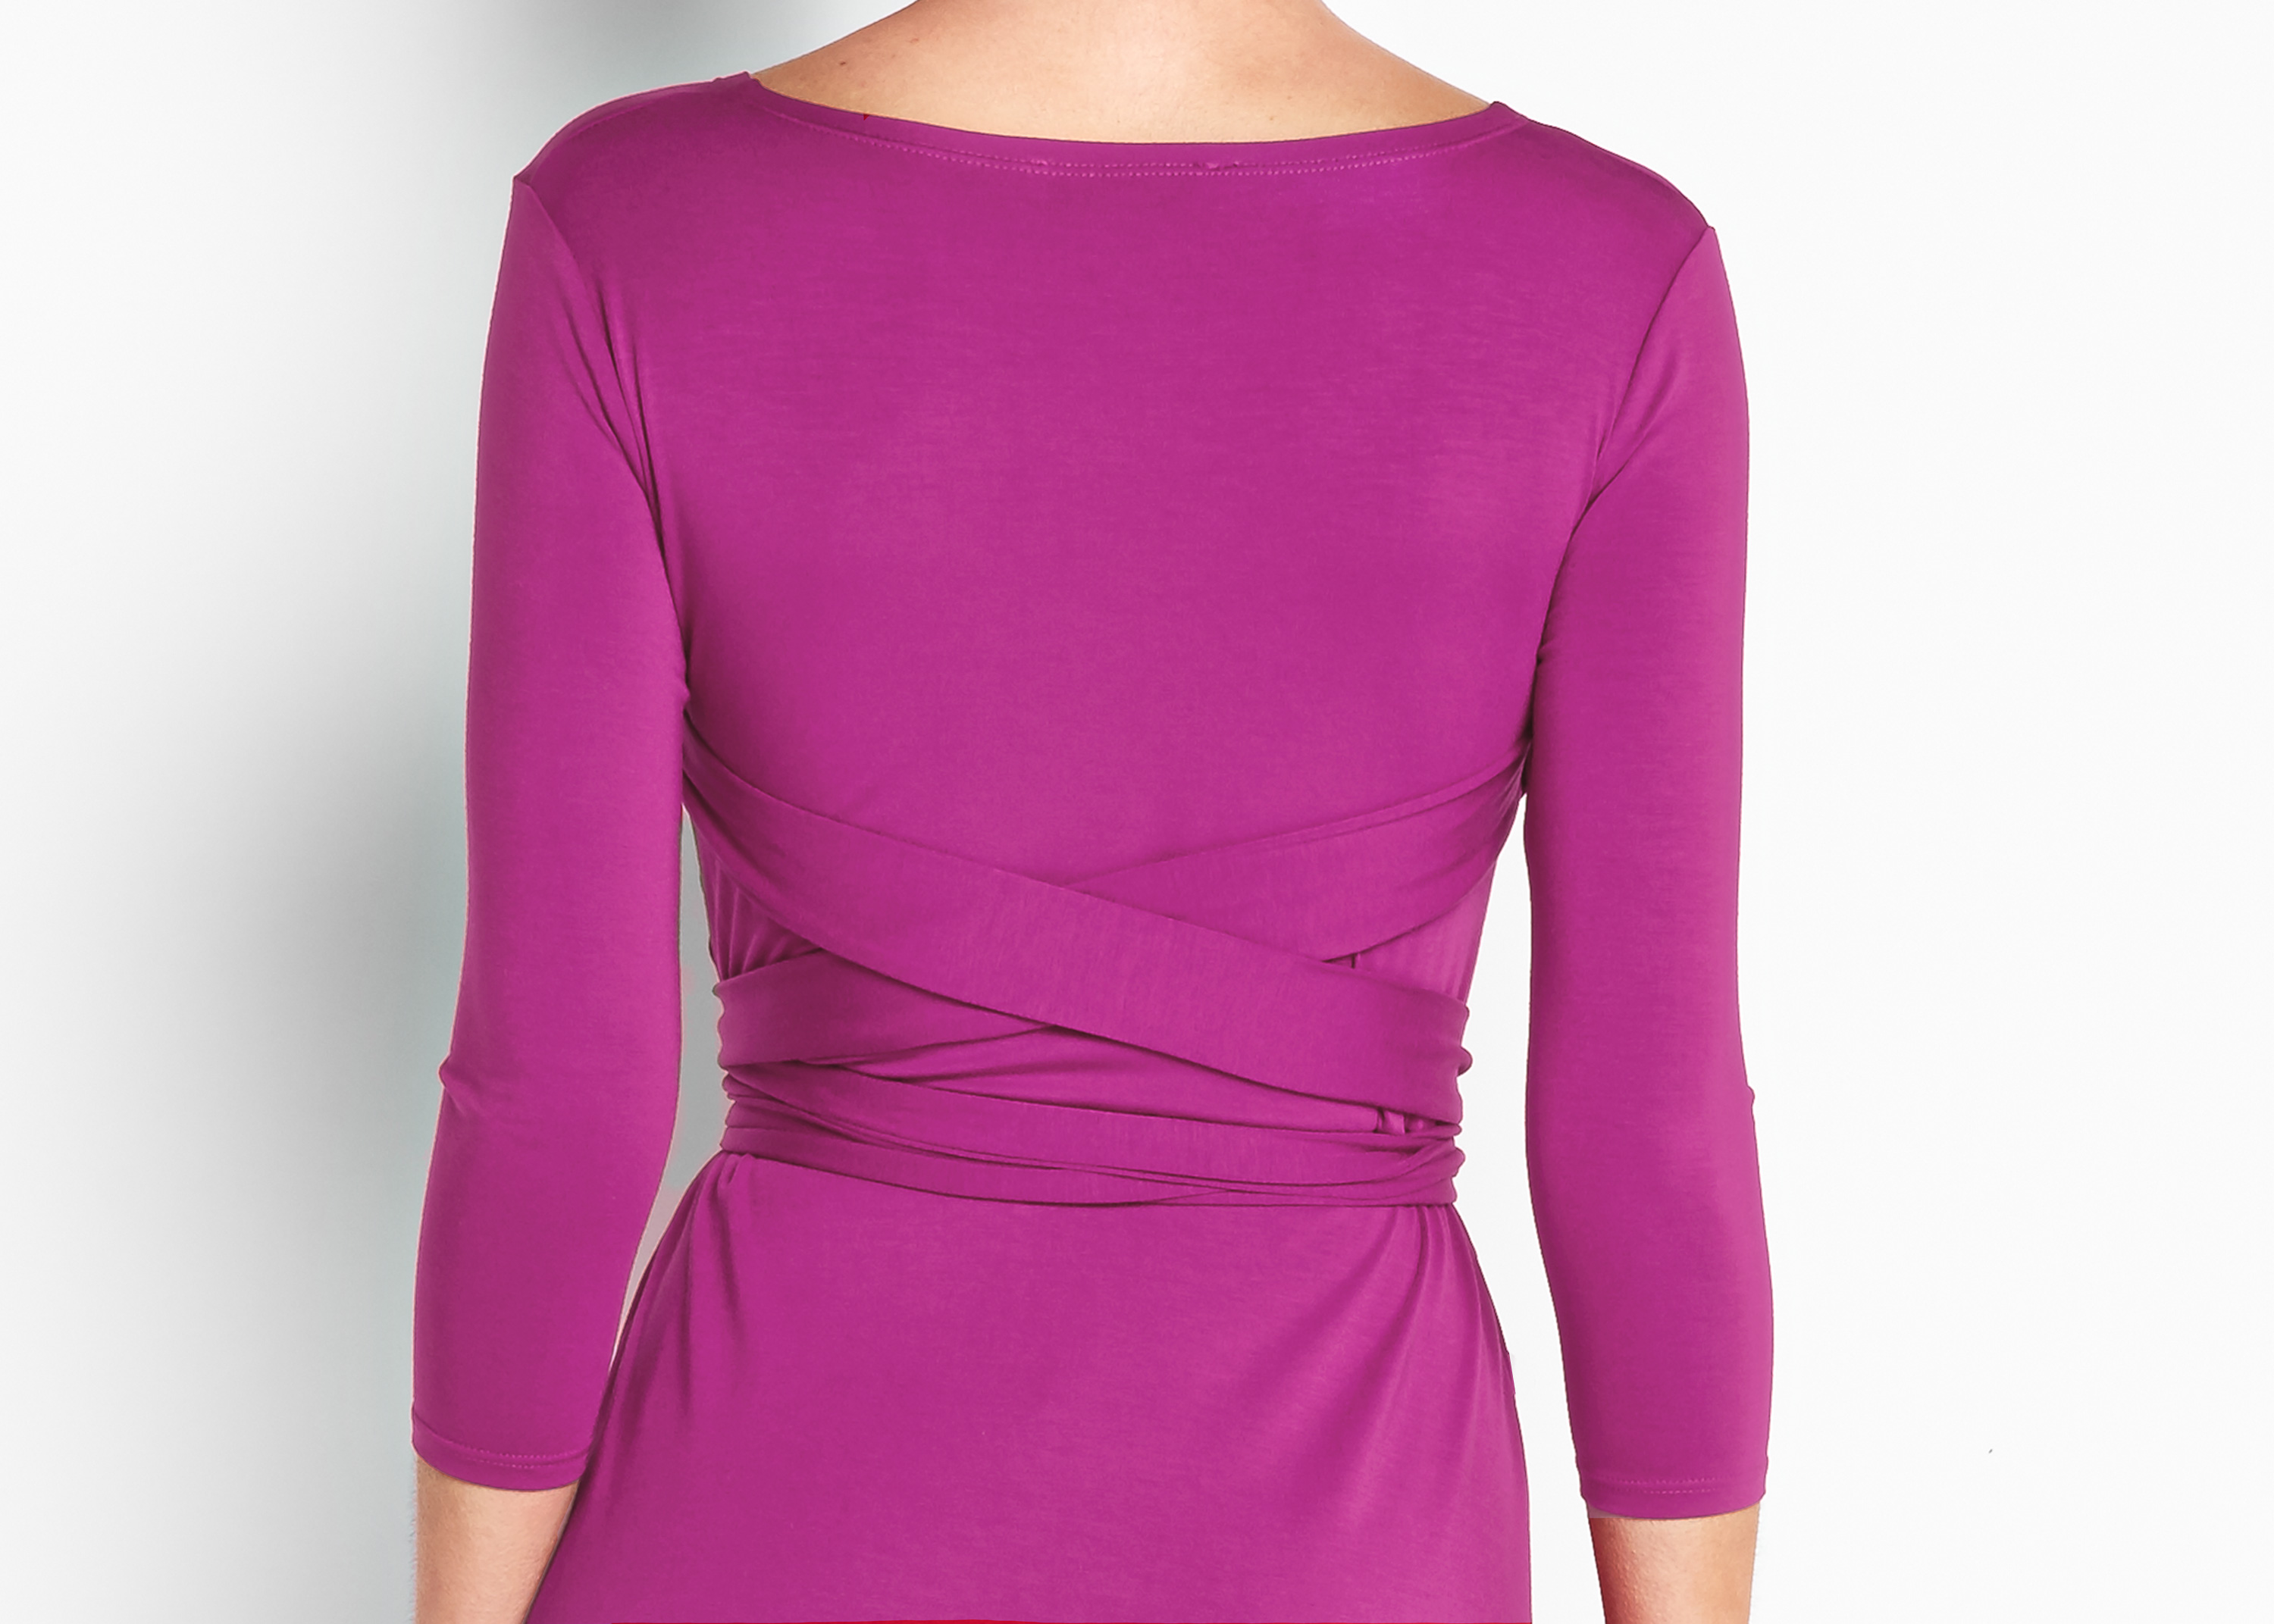 Of Mercer | Fuchsia Sutton Wrap Dress | Detail Shot